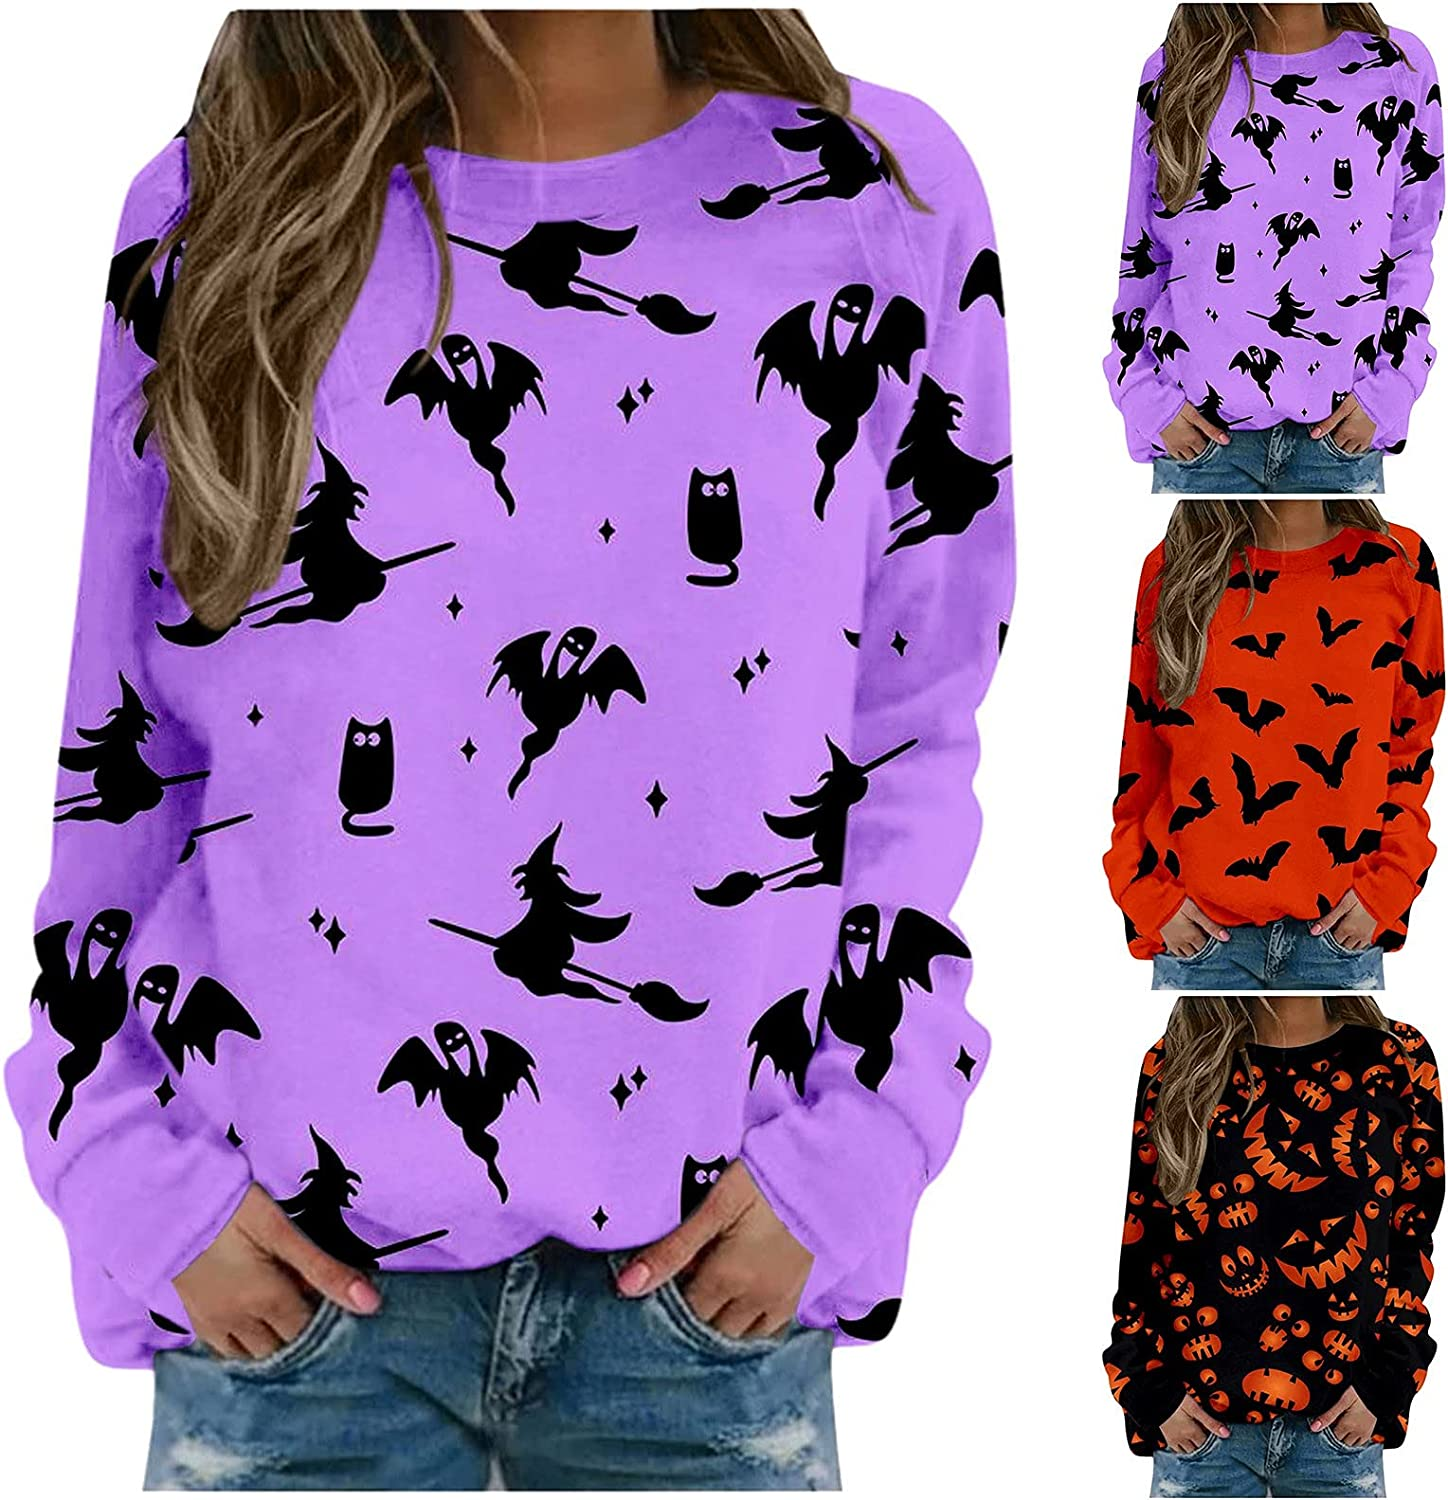 nunonette Sweatshirts for Women Crewneck Pullover Halloween Ghost Pattern Long Sleeve Tops Blouse Casual Loose Style Sweater